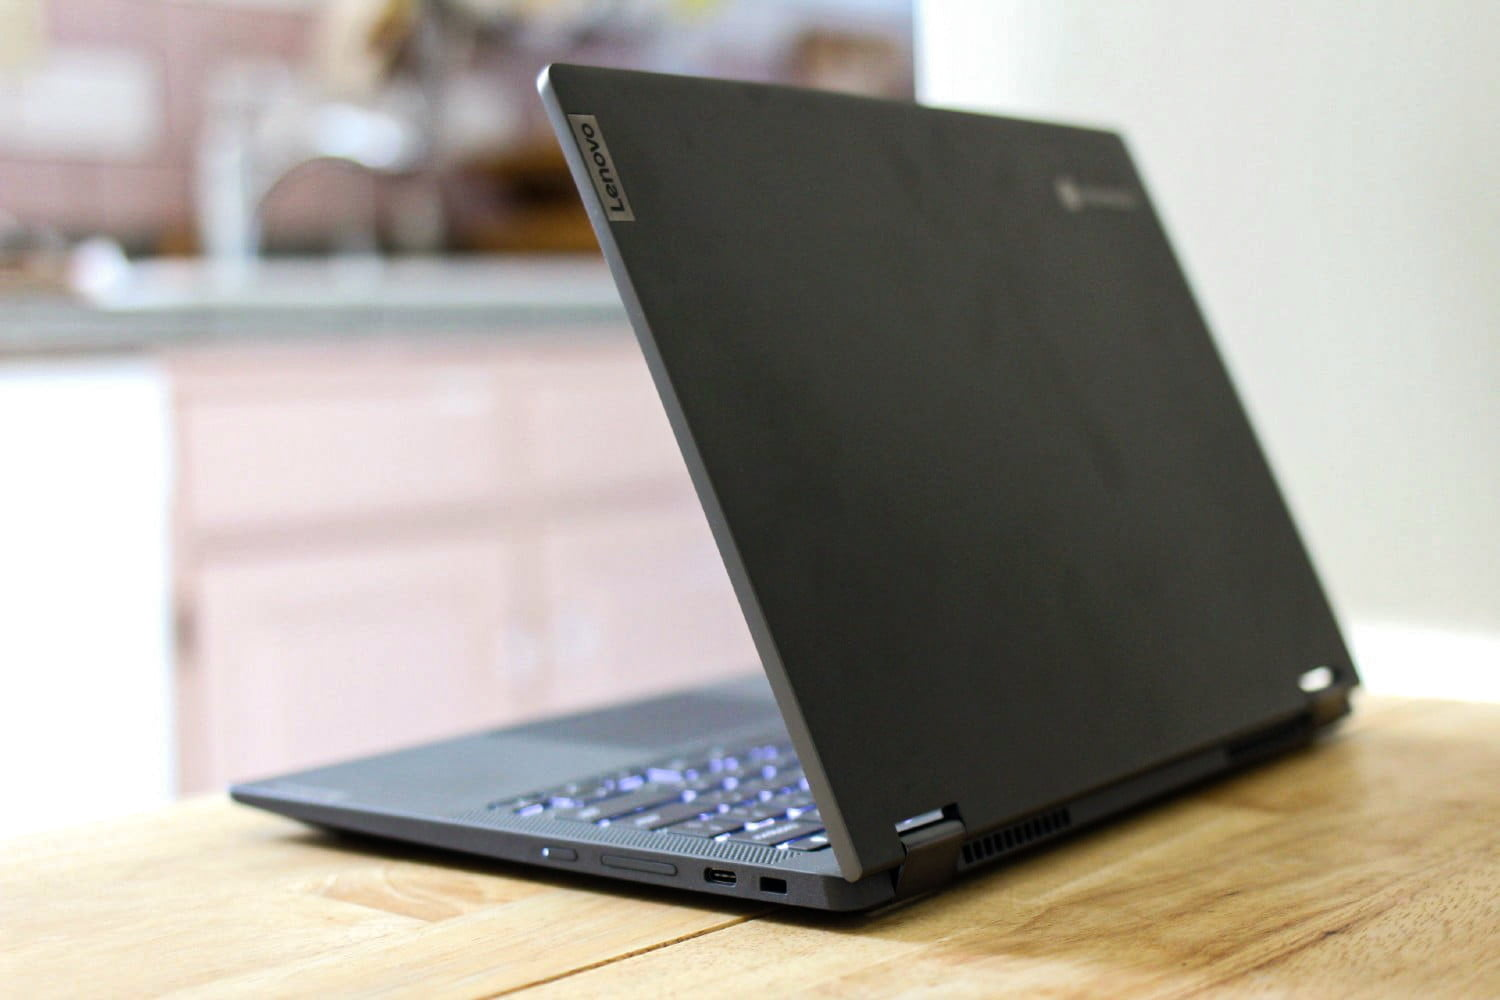 The best laptops under $ 500 in 2021: Lenovo, Acer and others